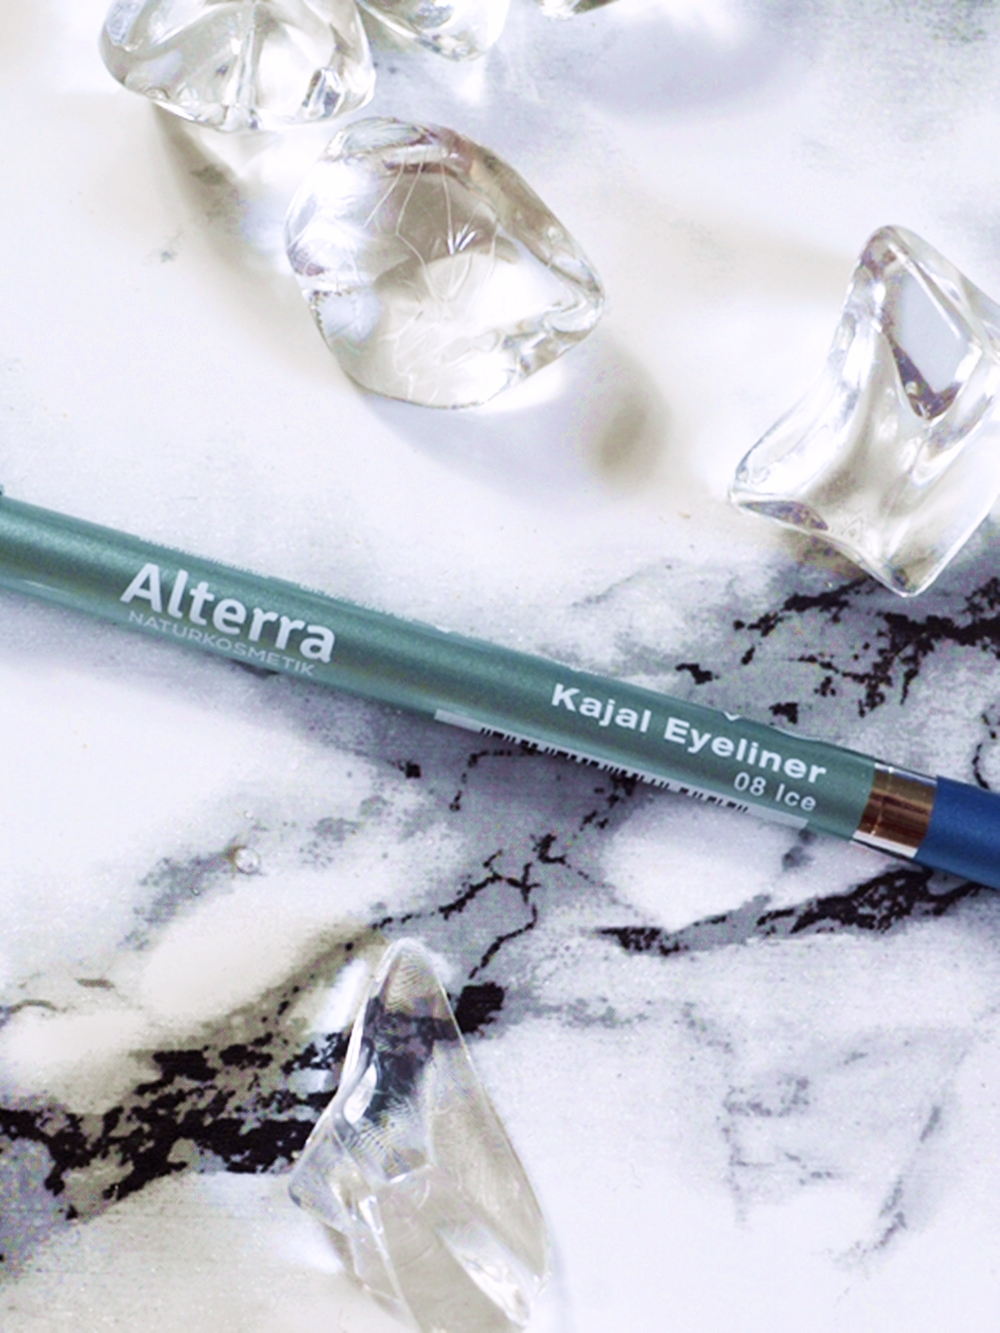 Products of the TrendBox / TrendRaider June 2016 'WaterPassion' / Alterra Kajal Eyeliner